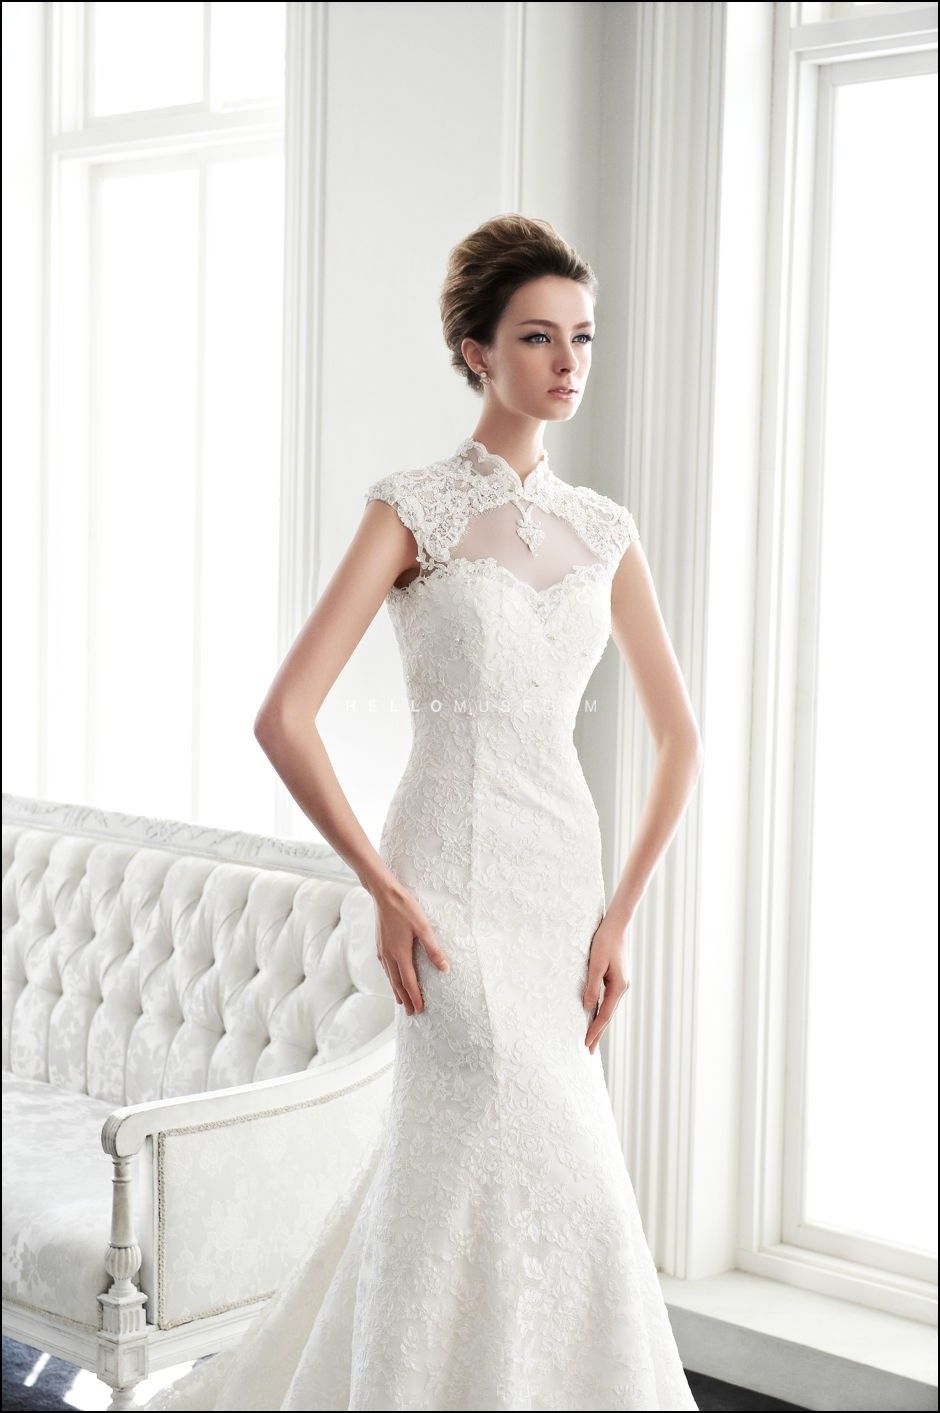 Korean Bridal Gowns | Dresses and Gowns Ideas | Pinterest | Bridal ...